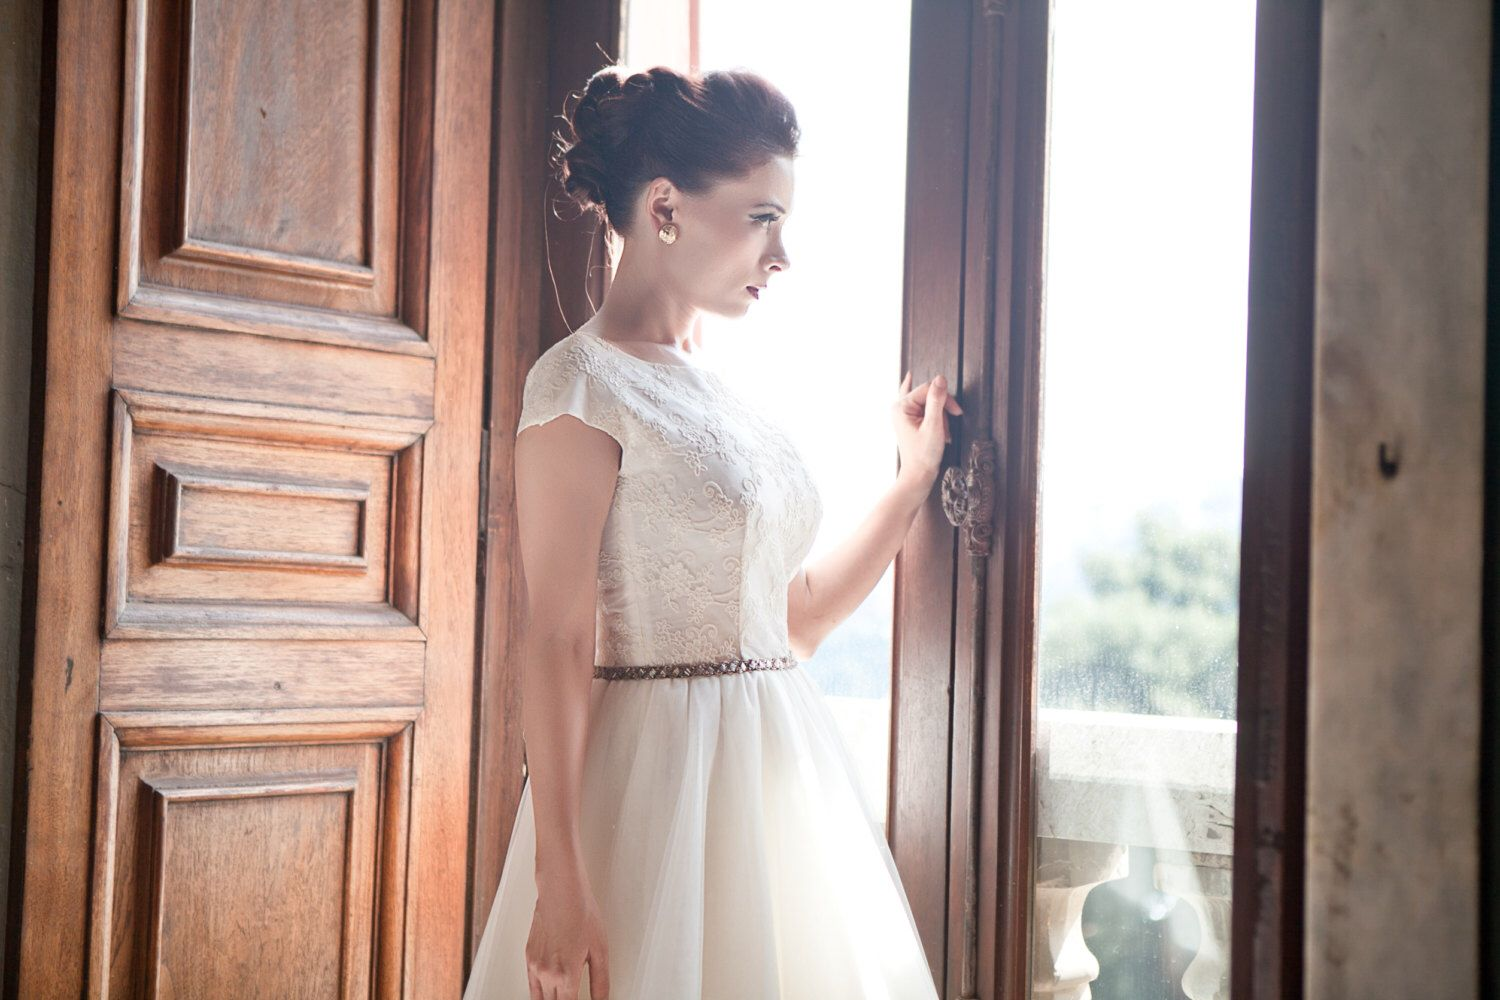 50s wedding dress lace  Tea length lace wedding dress s tulle wedding gown s ivory